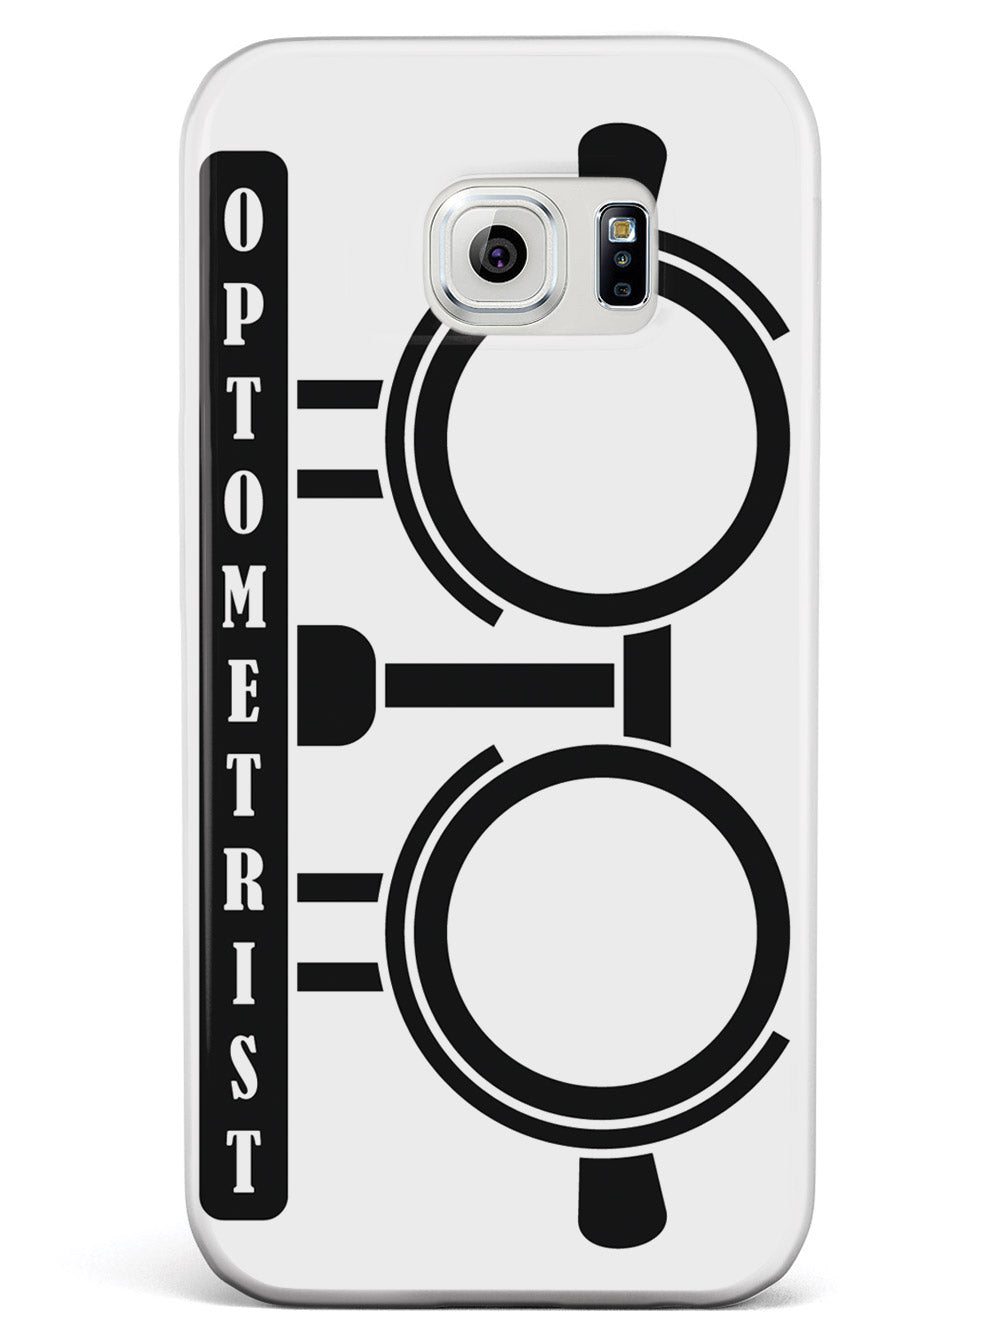 Phoropter - Test Glasses - Optometrist Case